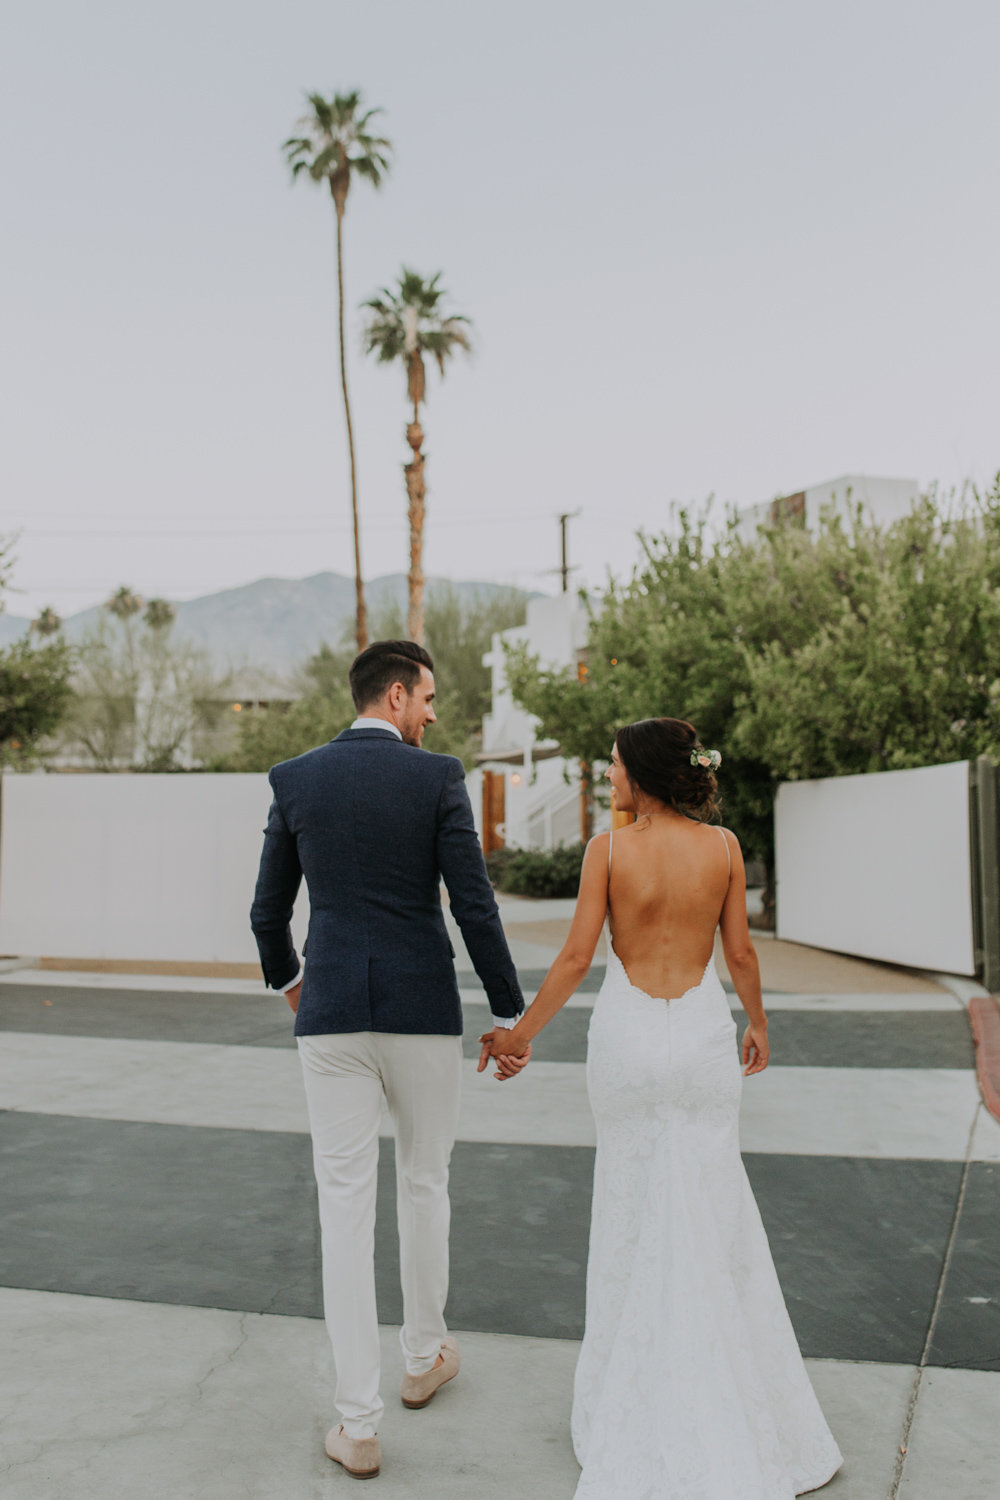 Brianna Broyles_Palm Springs Wedding Photographer_Ace Hotel Wedding_Ace Hotel Palm Springs-74